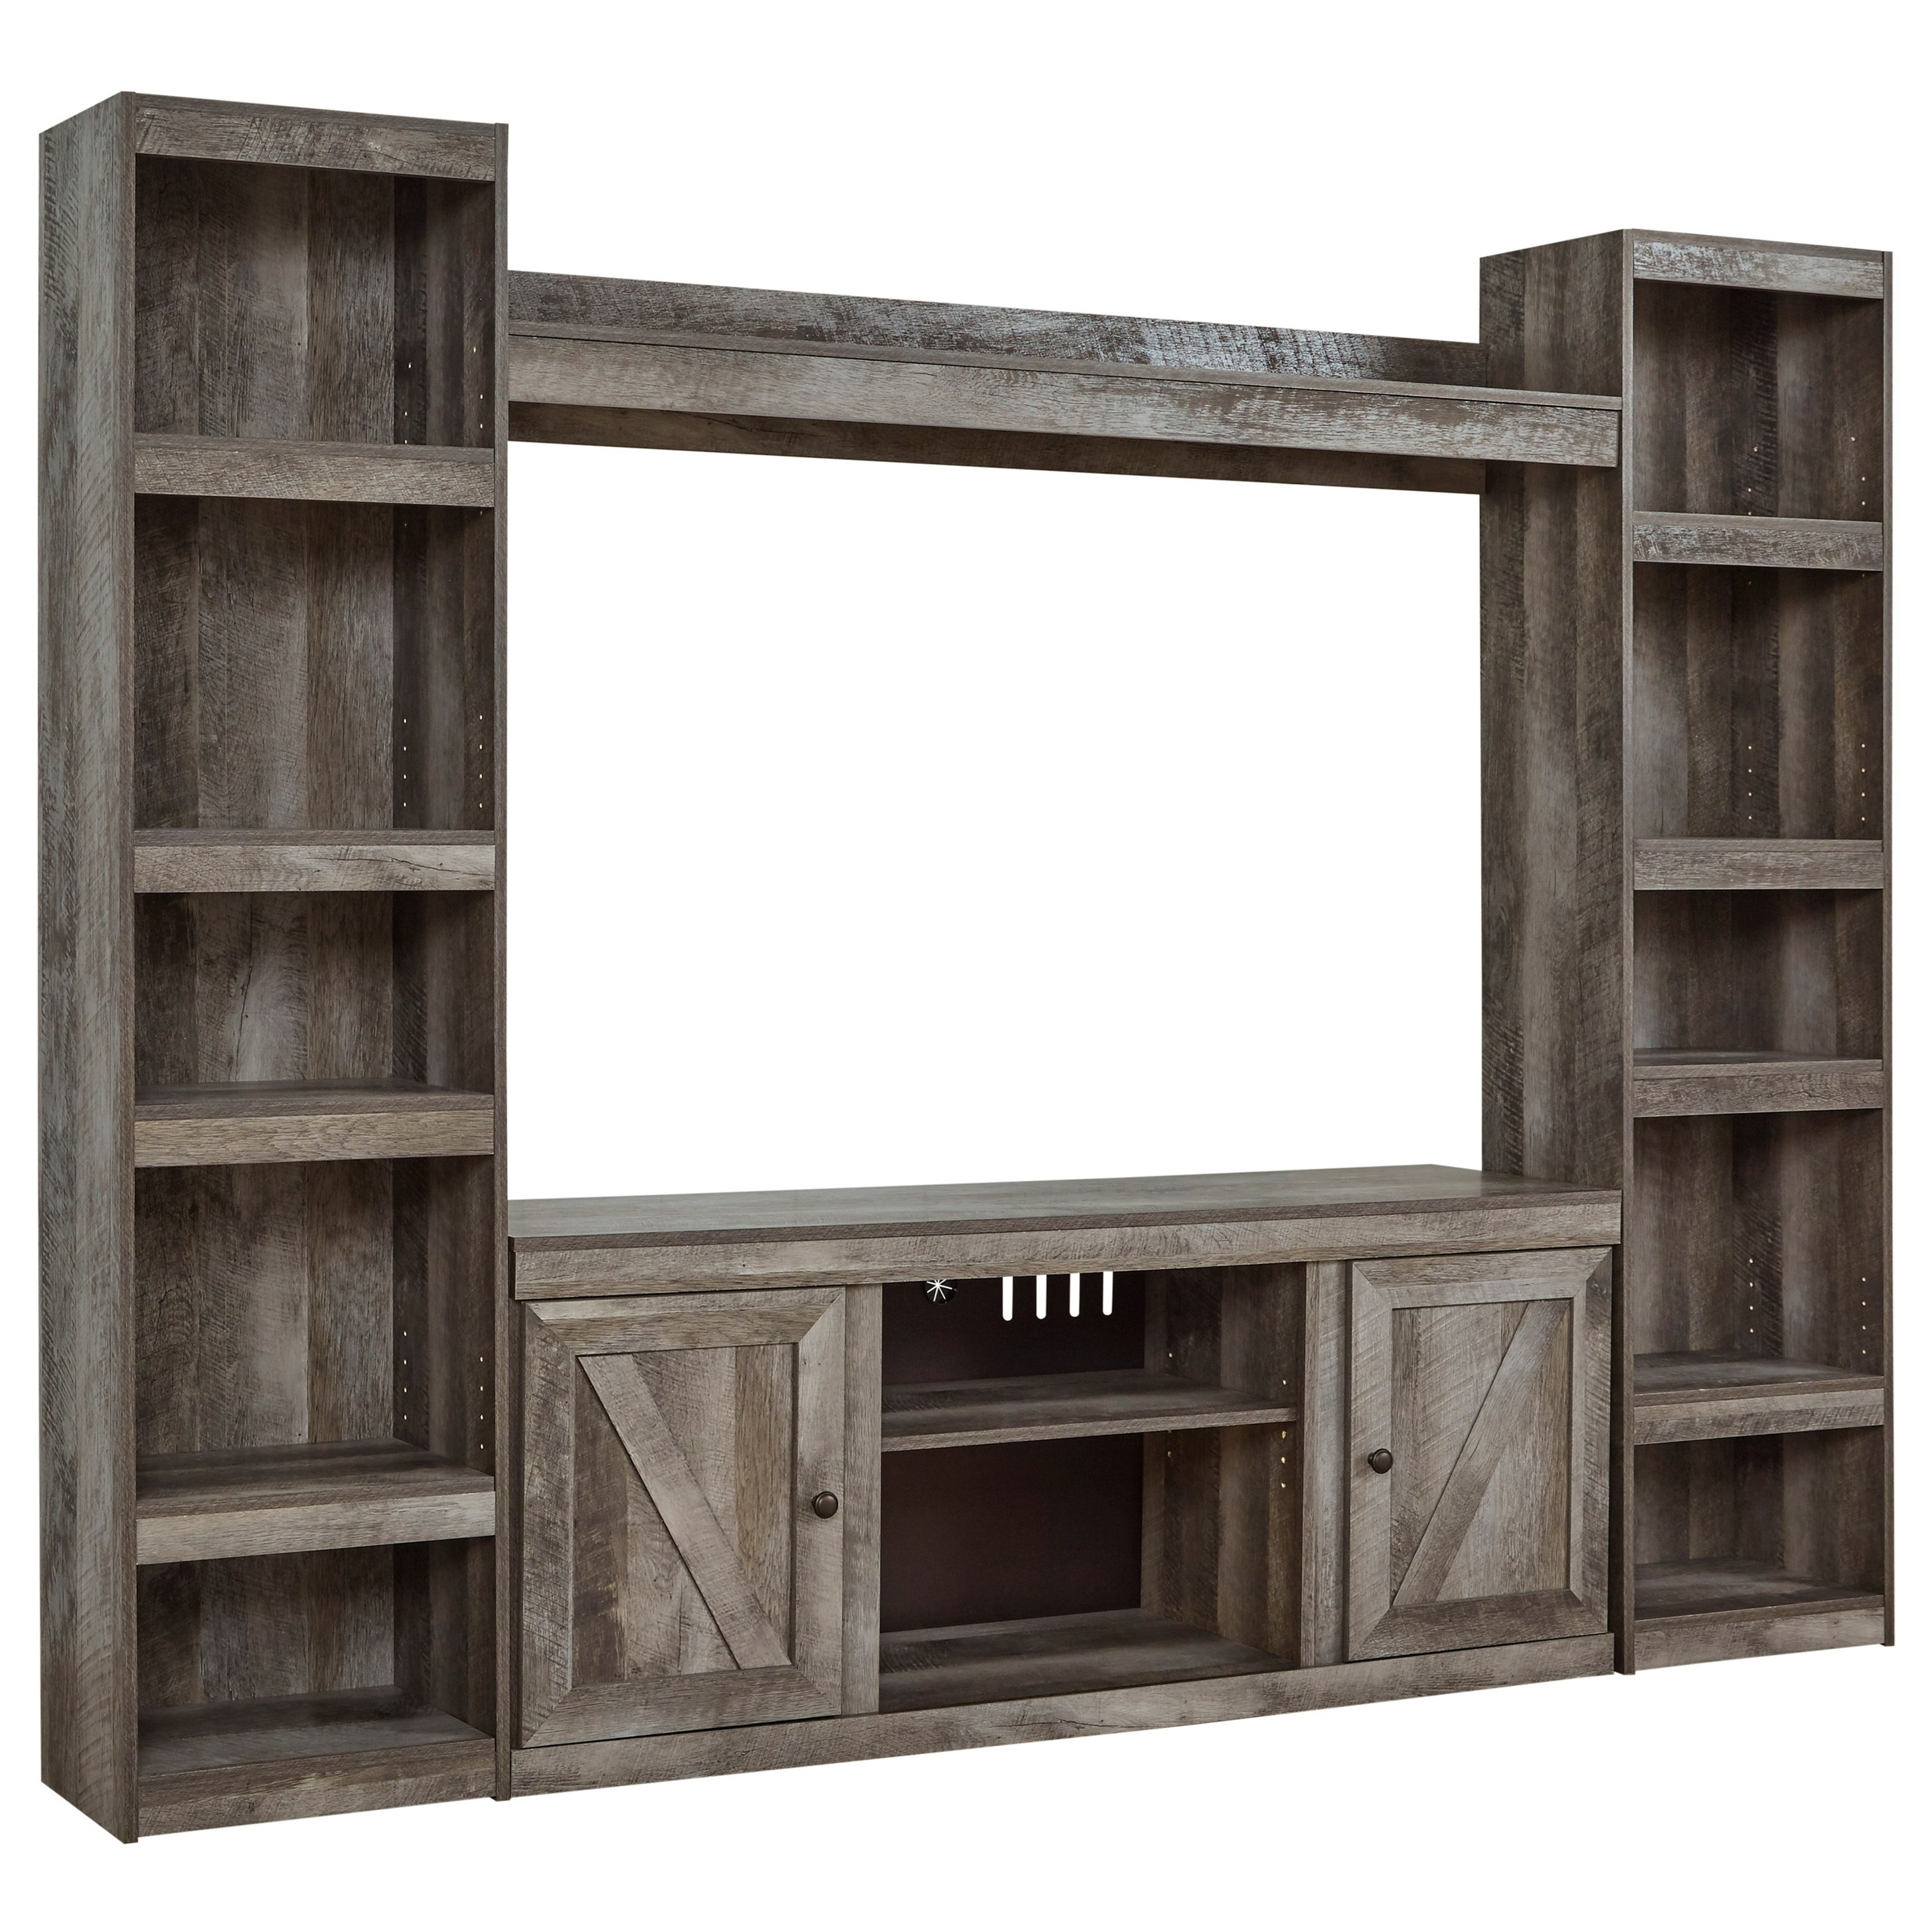 Wynnlow Large TV Stand w/ Piers and Bridge by Signature Design by Ashley at Carolina Direct